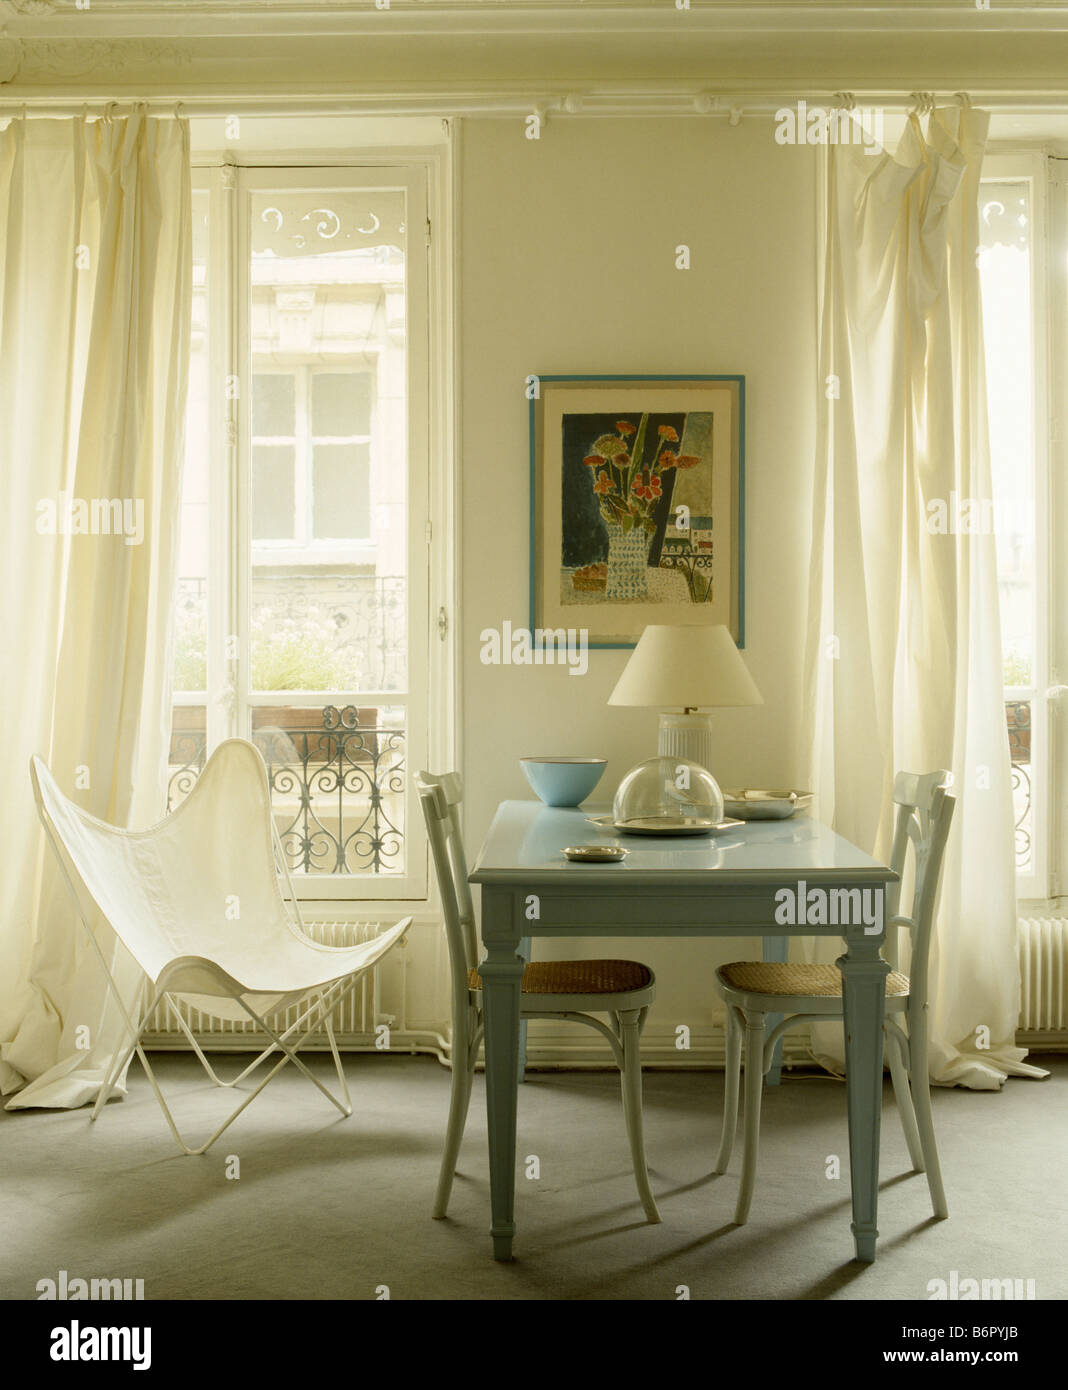 White Canvas Butterfly Chair And Pale Blue Table In Dining Room With Cream  Curtains At Tall Windows